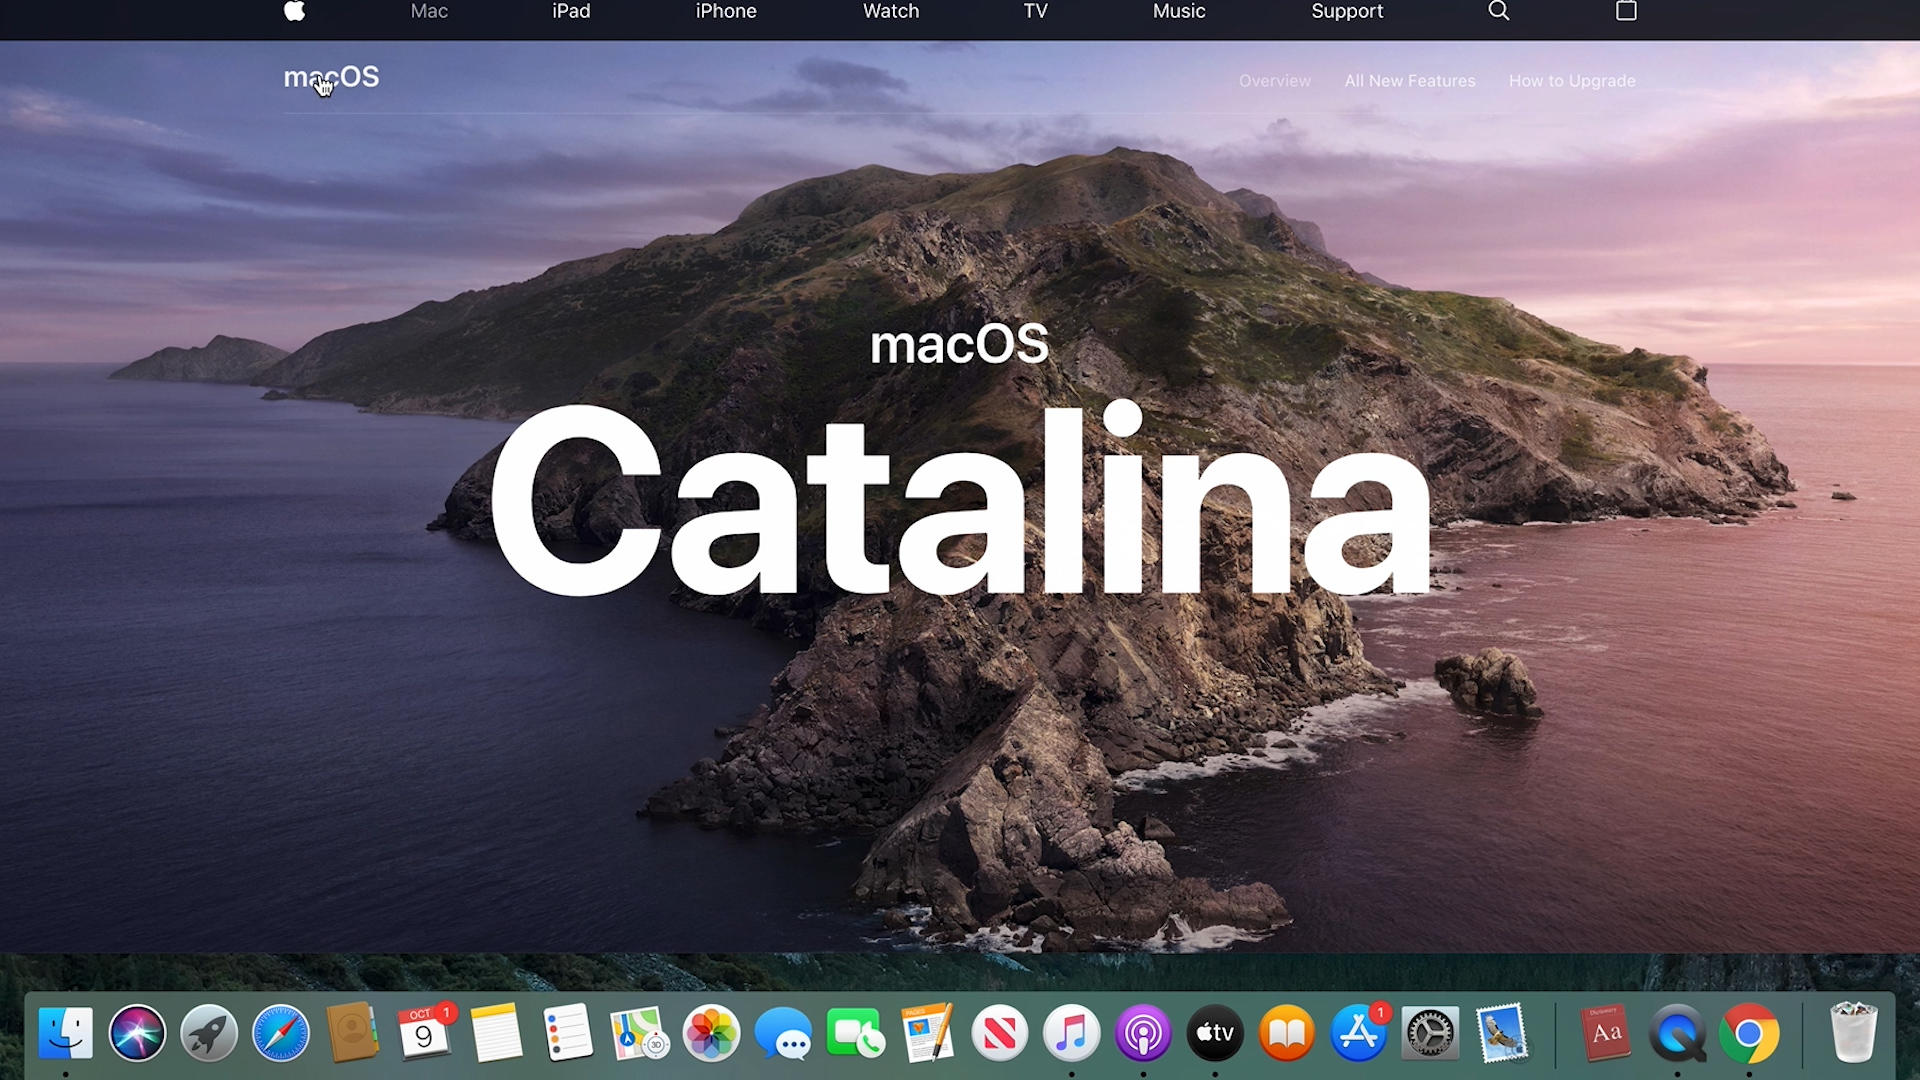 Video: MacOS Catalina: 5 best things